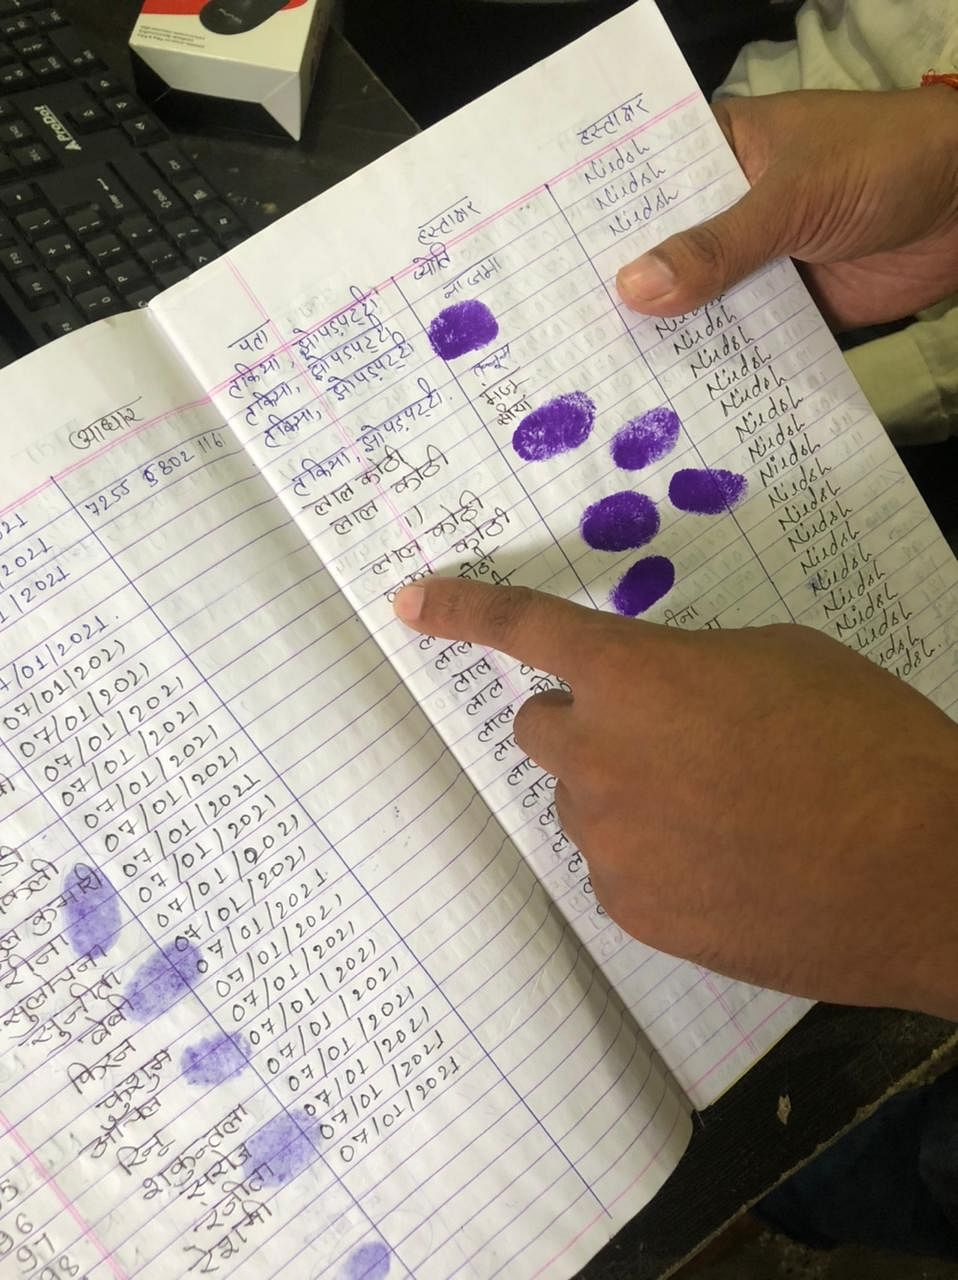 The register where records are maintained | Jyoti Yadav | ThePrint